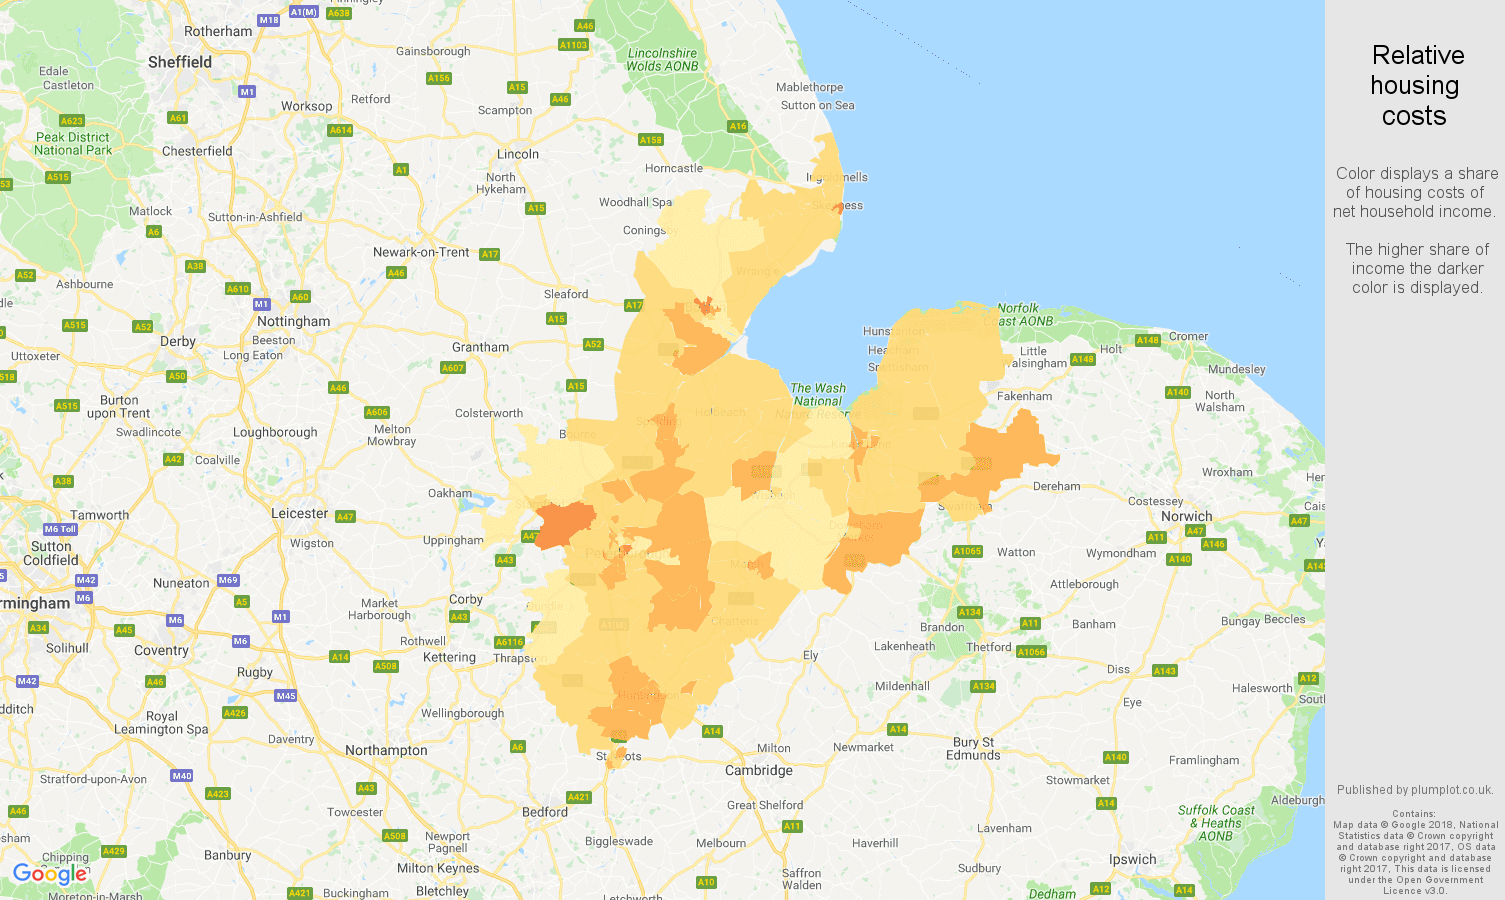 Peterborough relative housing costs map